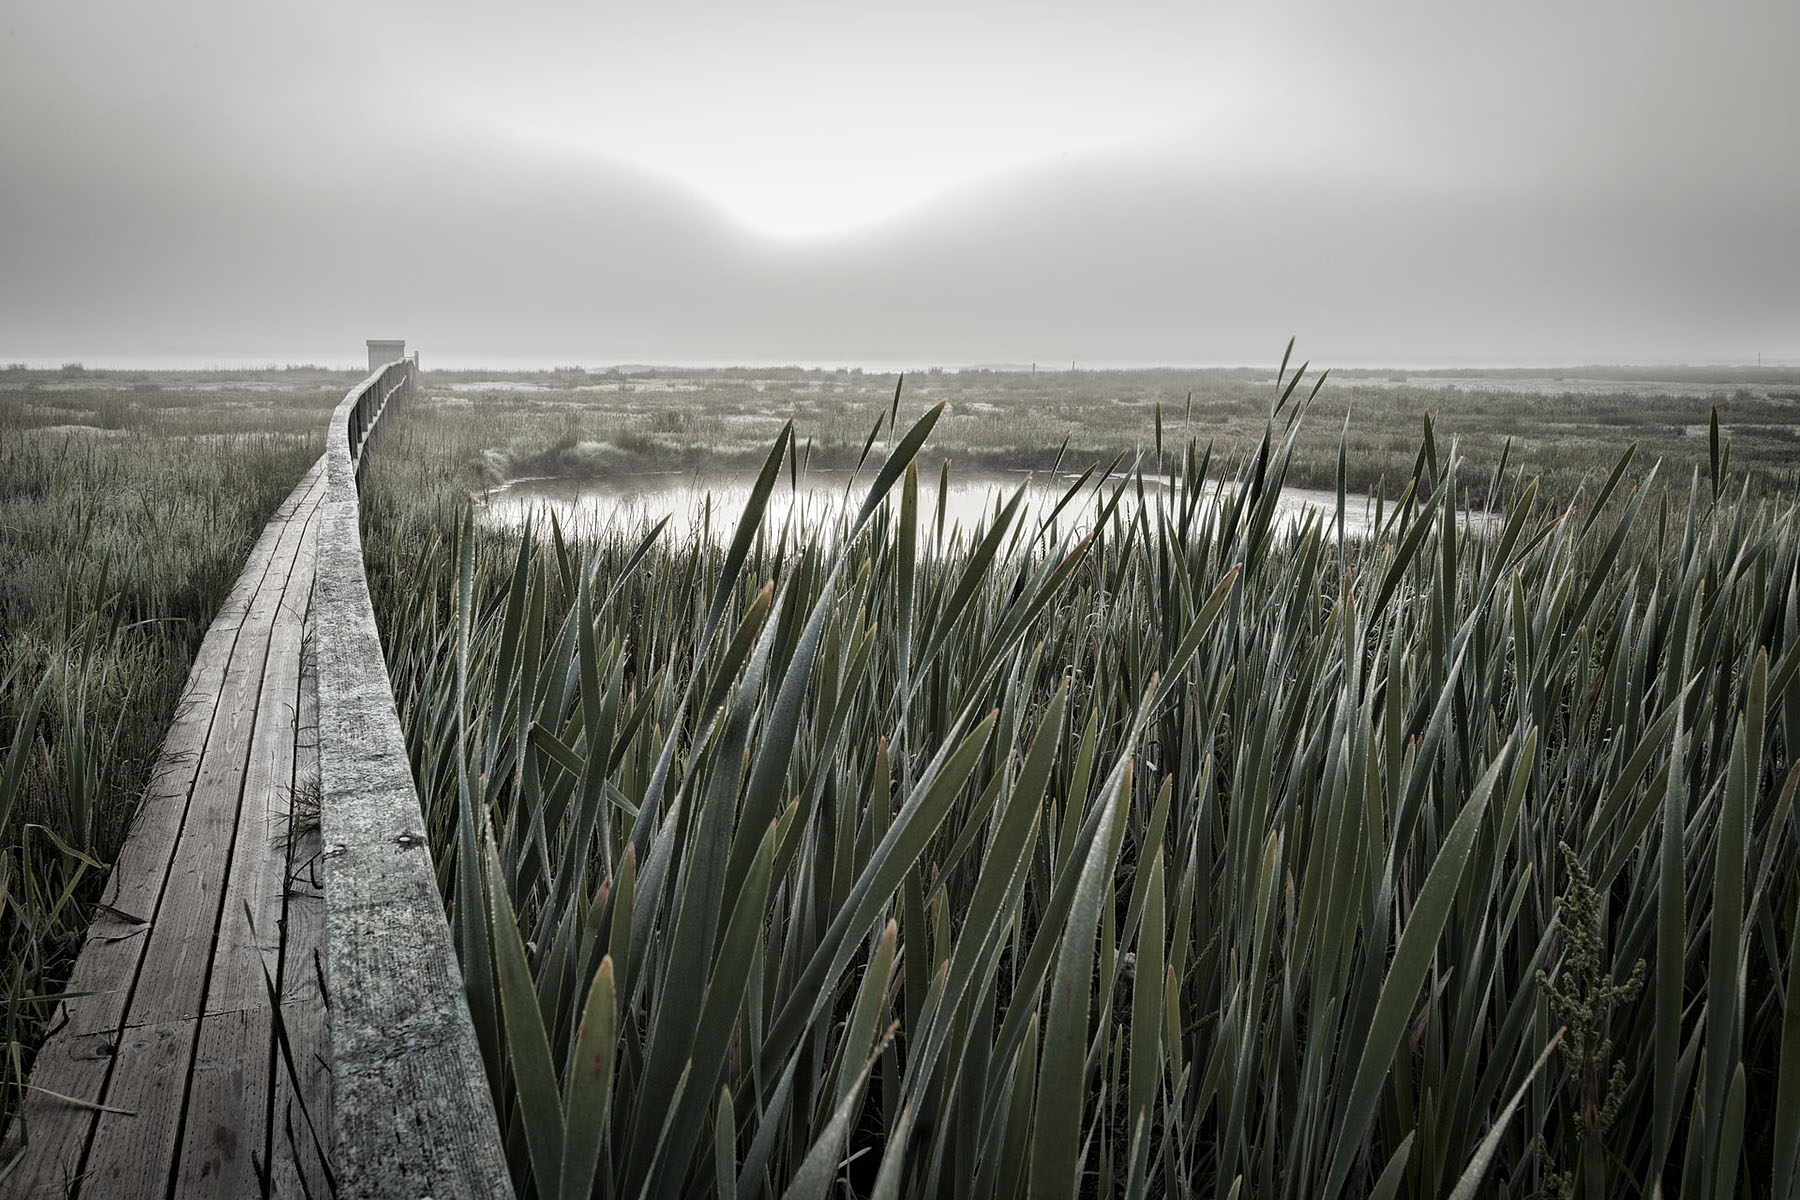 Marsh grass with pond | Dovis Bird Agency Reps